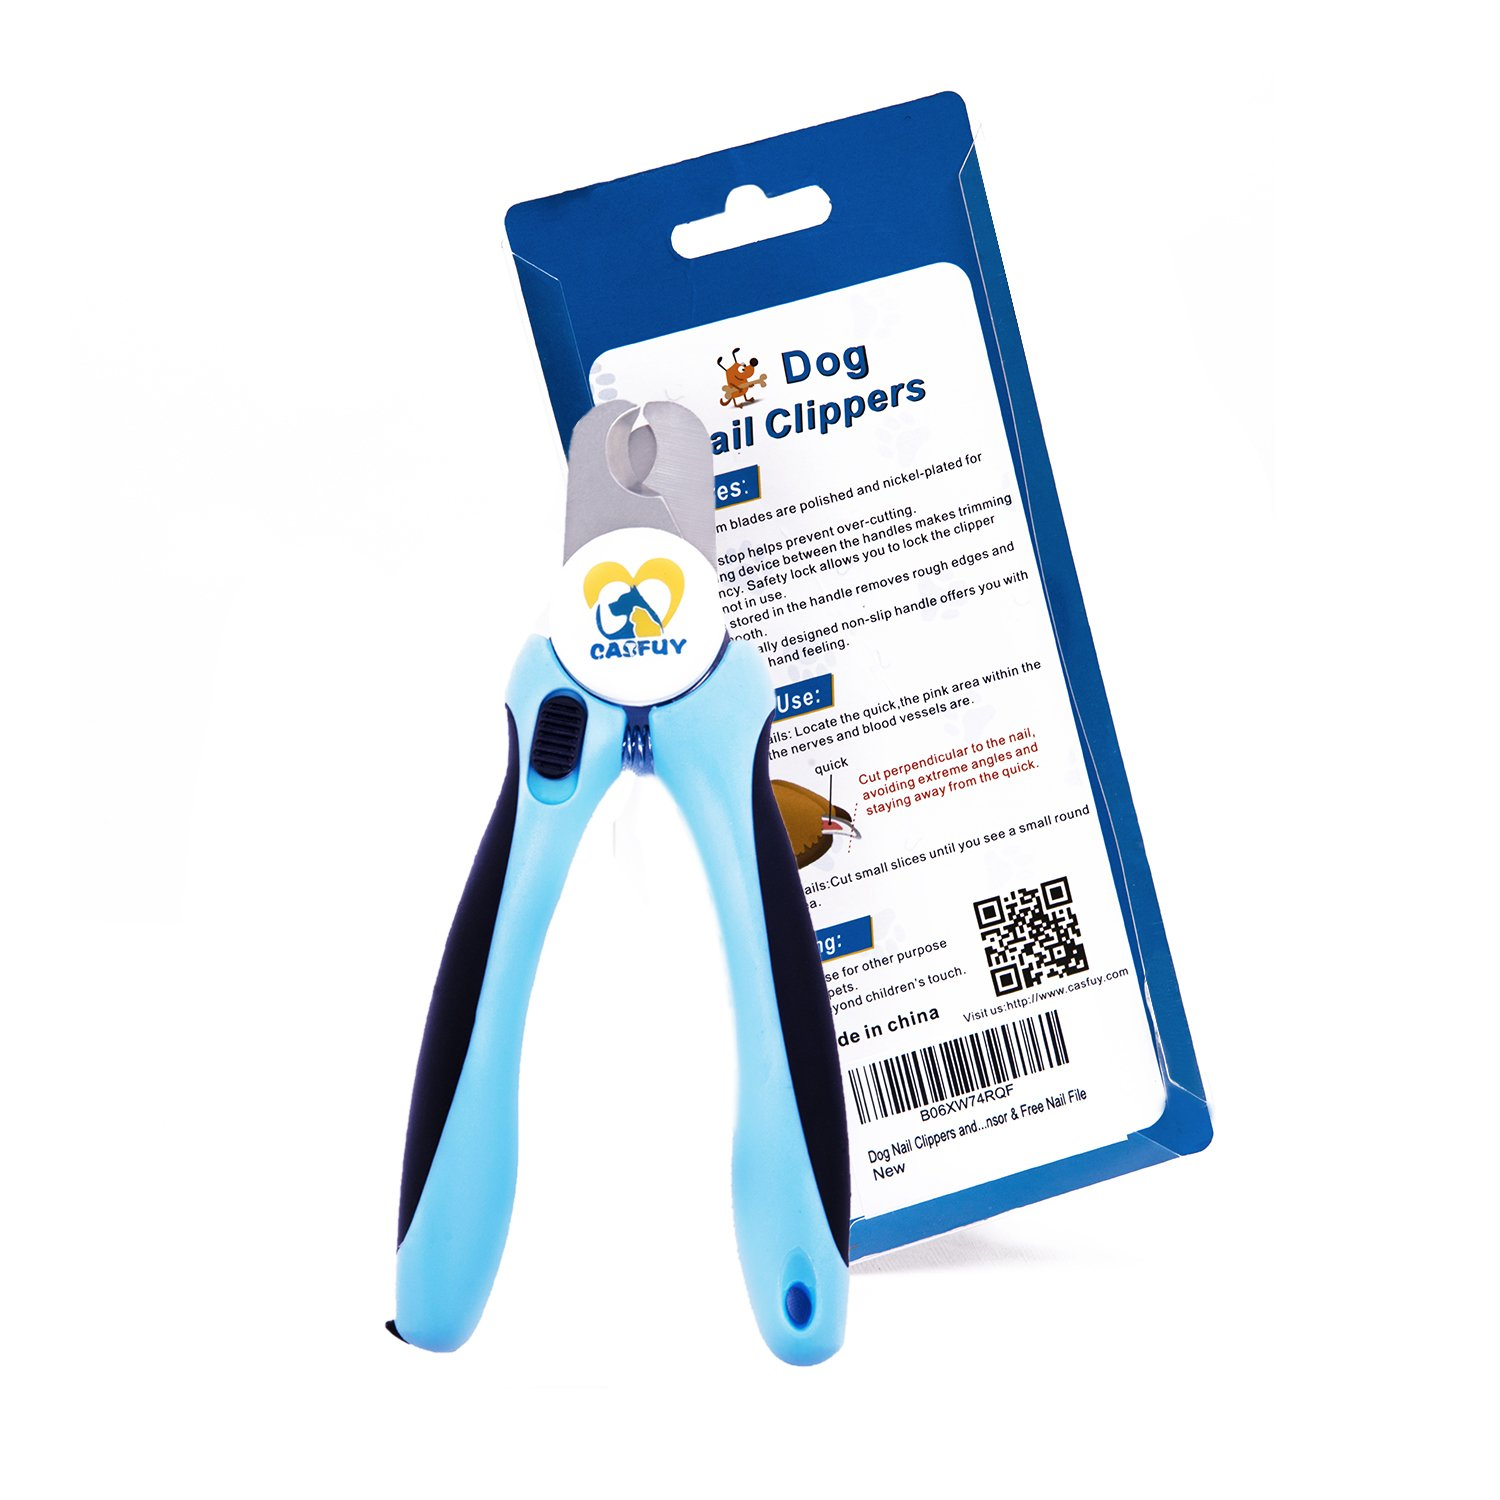 Amazon.com: Casfuy Dog Nail Clippers and Trimmer with Safety Guard ...